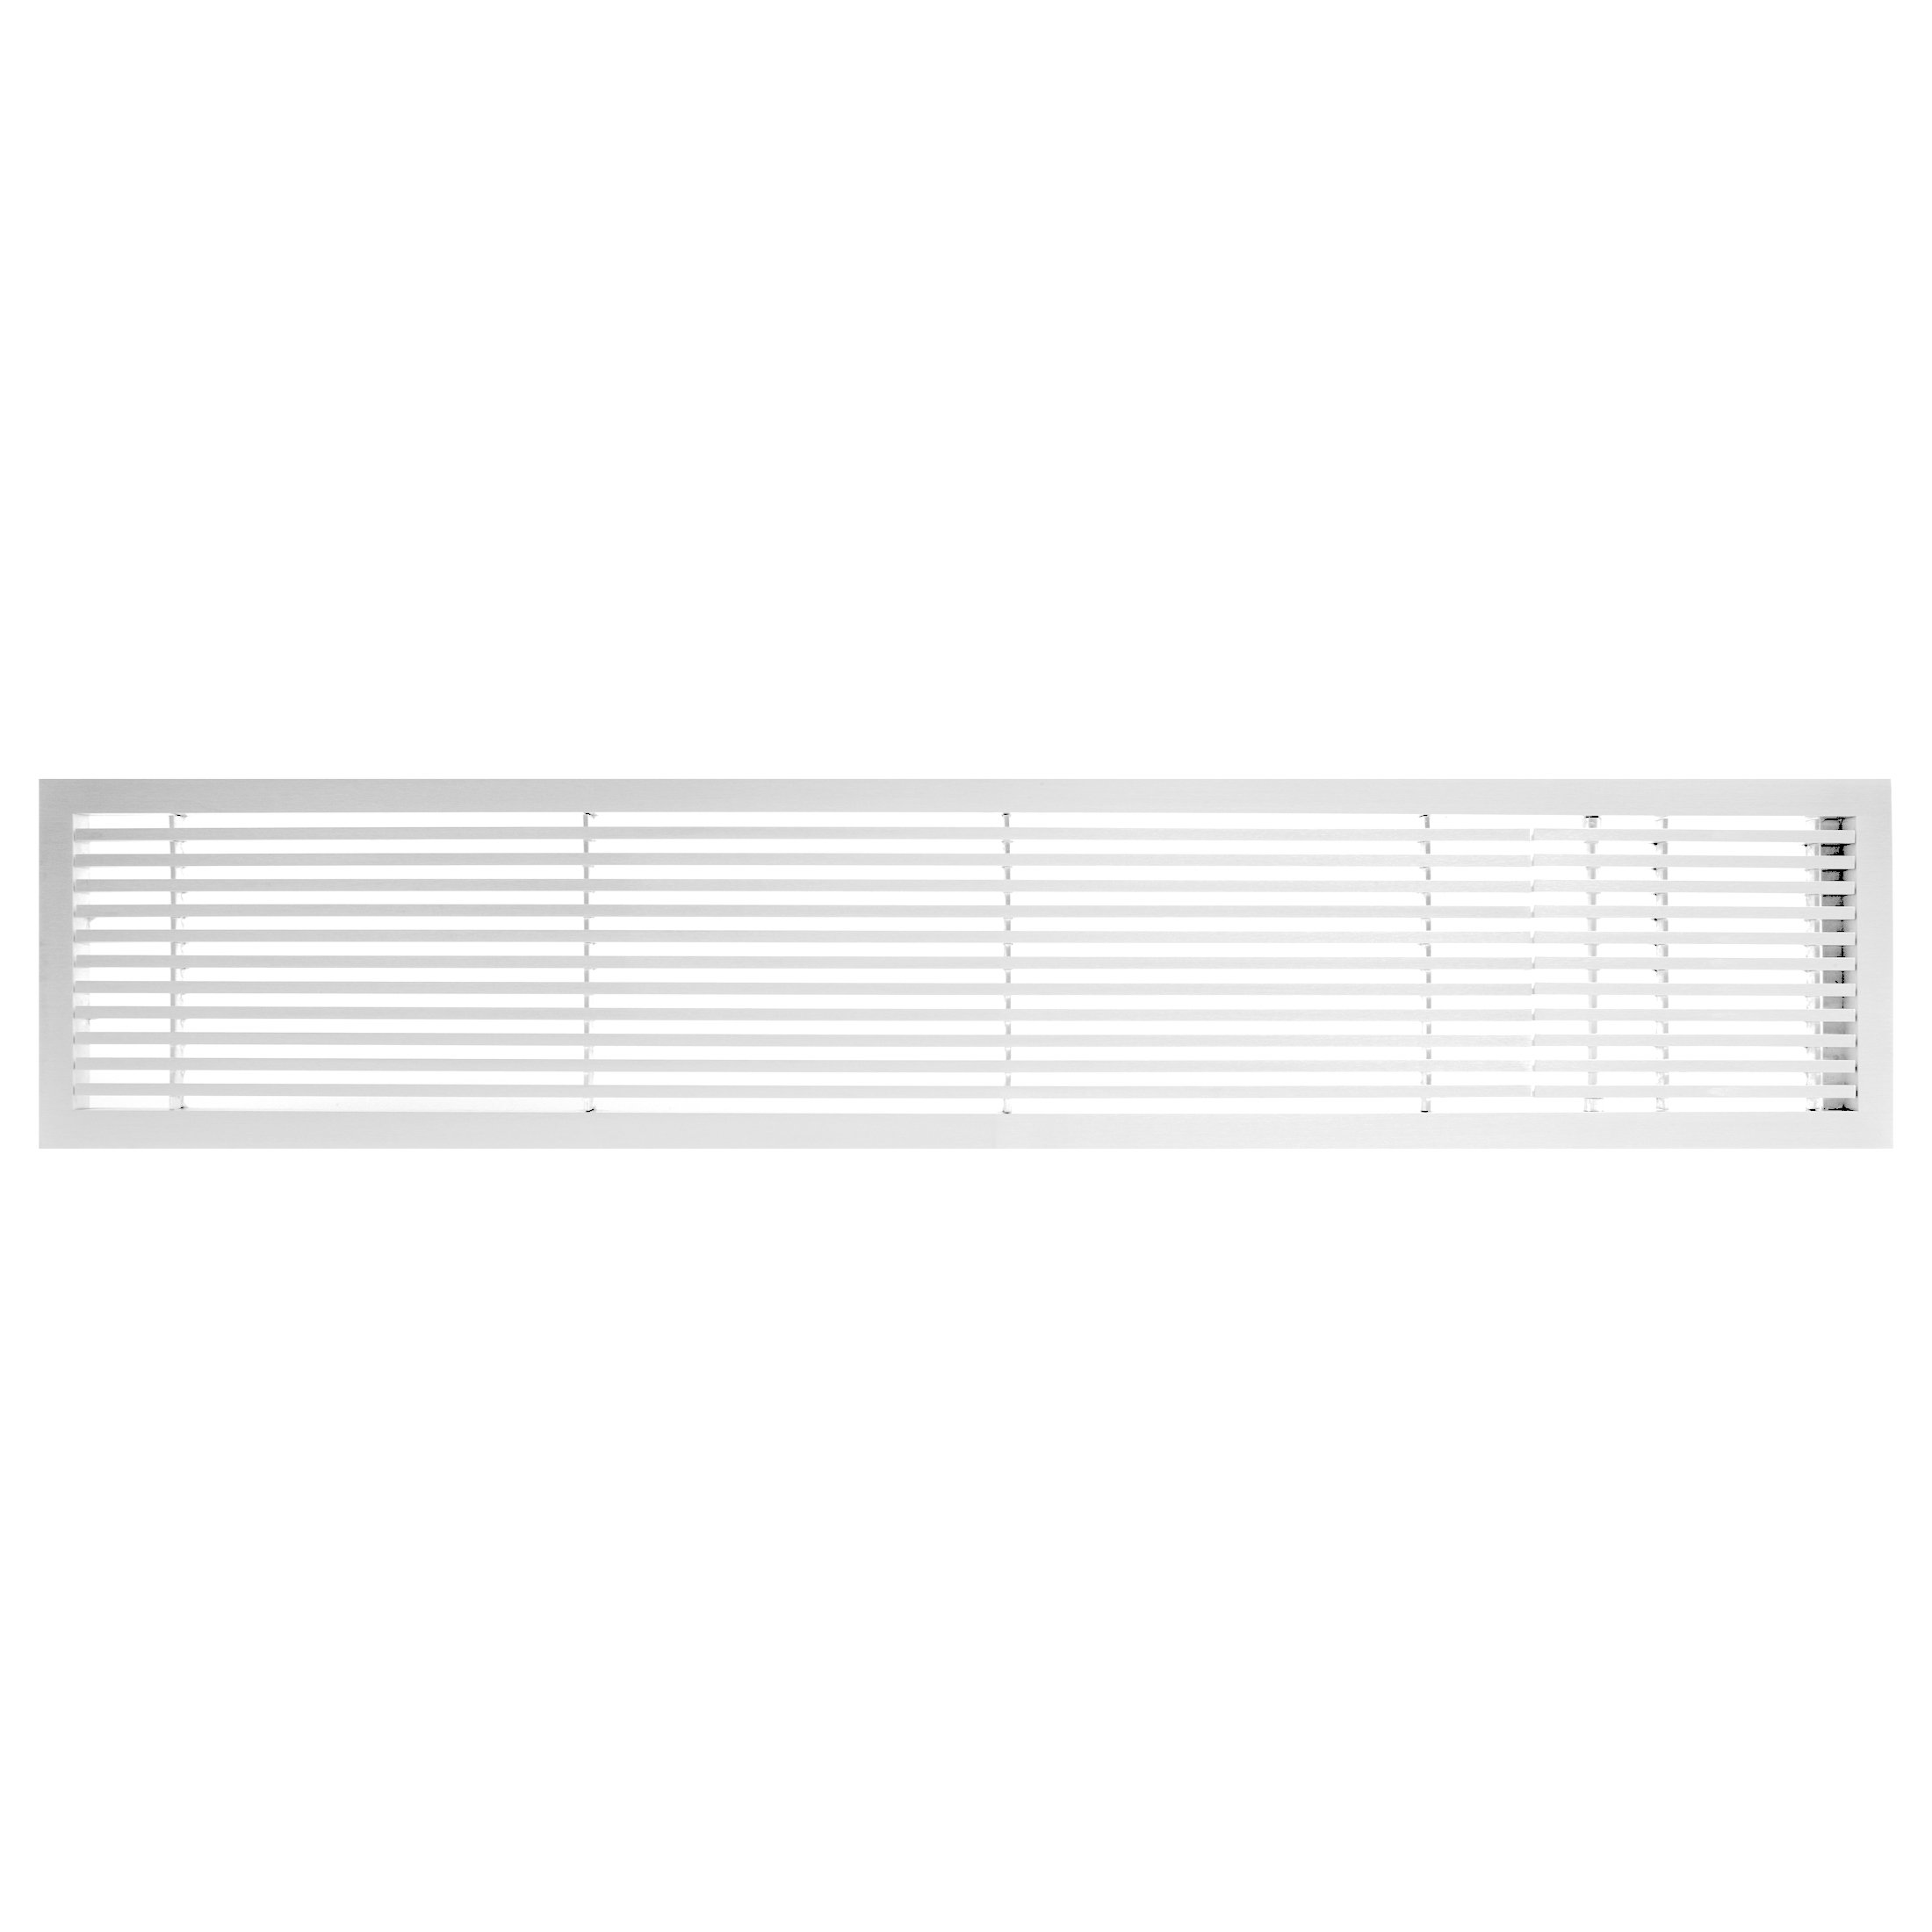 Architectural Grille 200044822 AG20 Series 4'' x 48'' Solid Aluminum Fixed Bar Supply/Return Air Vent Grille, White-Matte with Right Door